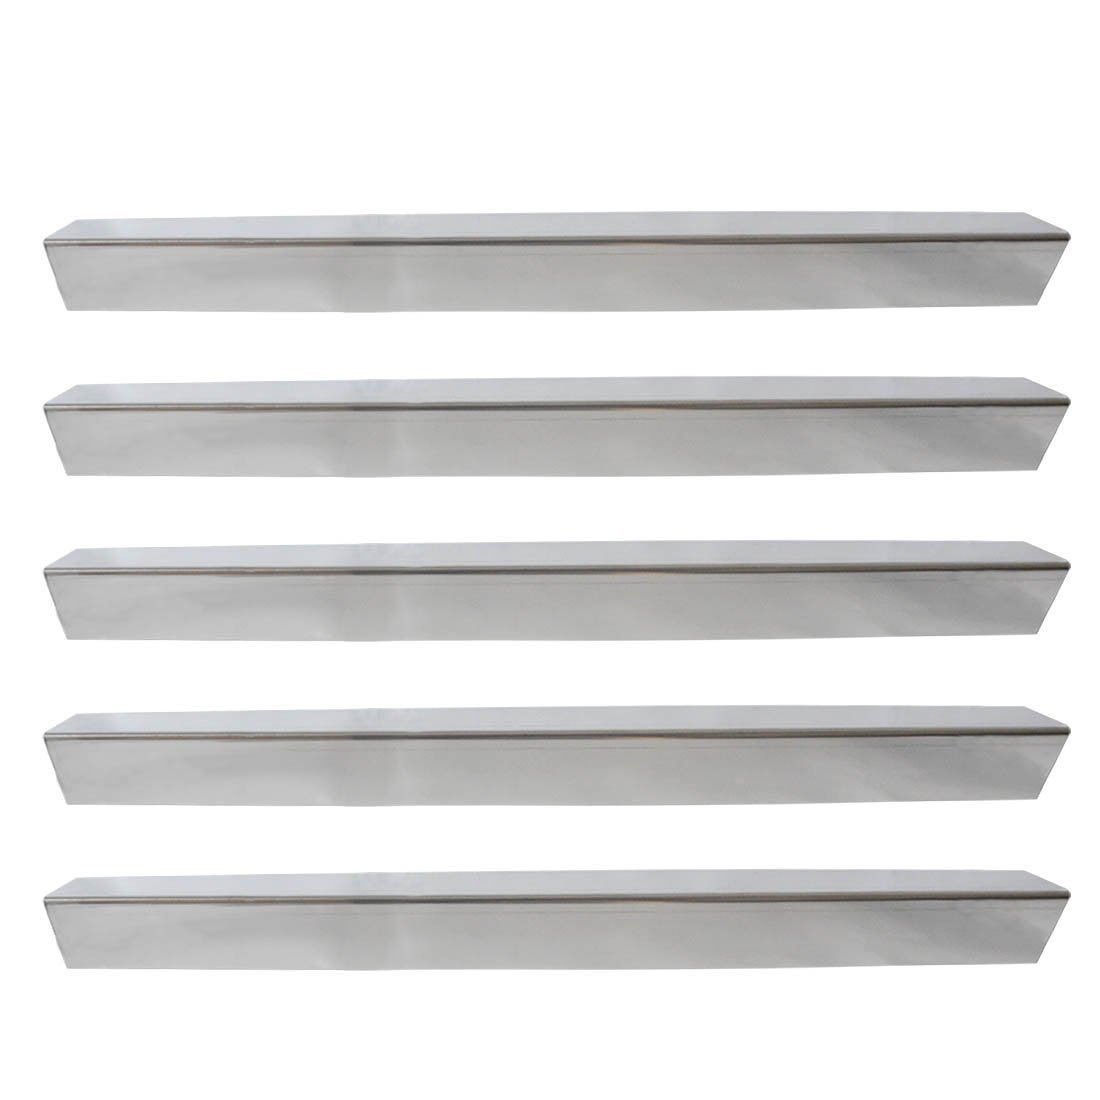 Onlyfire Gas Grill Replacement Stainless Steel Flavorizer Bars/Heat Plate/Heat Shield for Weber Genesis 300 Series Grills Models(Side-mounted Panel), Set of 5, 24 1/2'' x 2 2/5'' x 2 2/5'' Inches